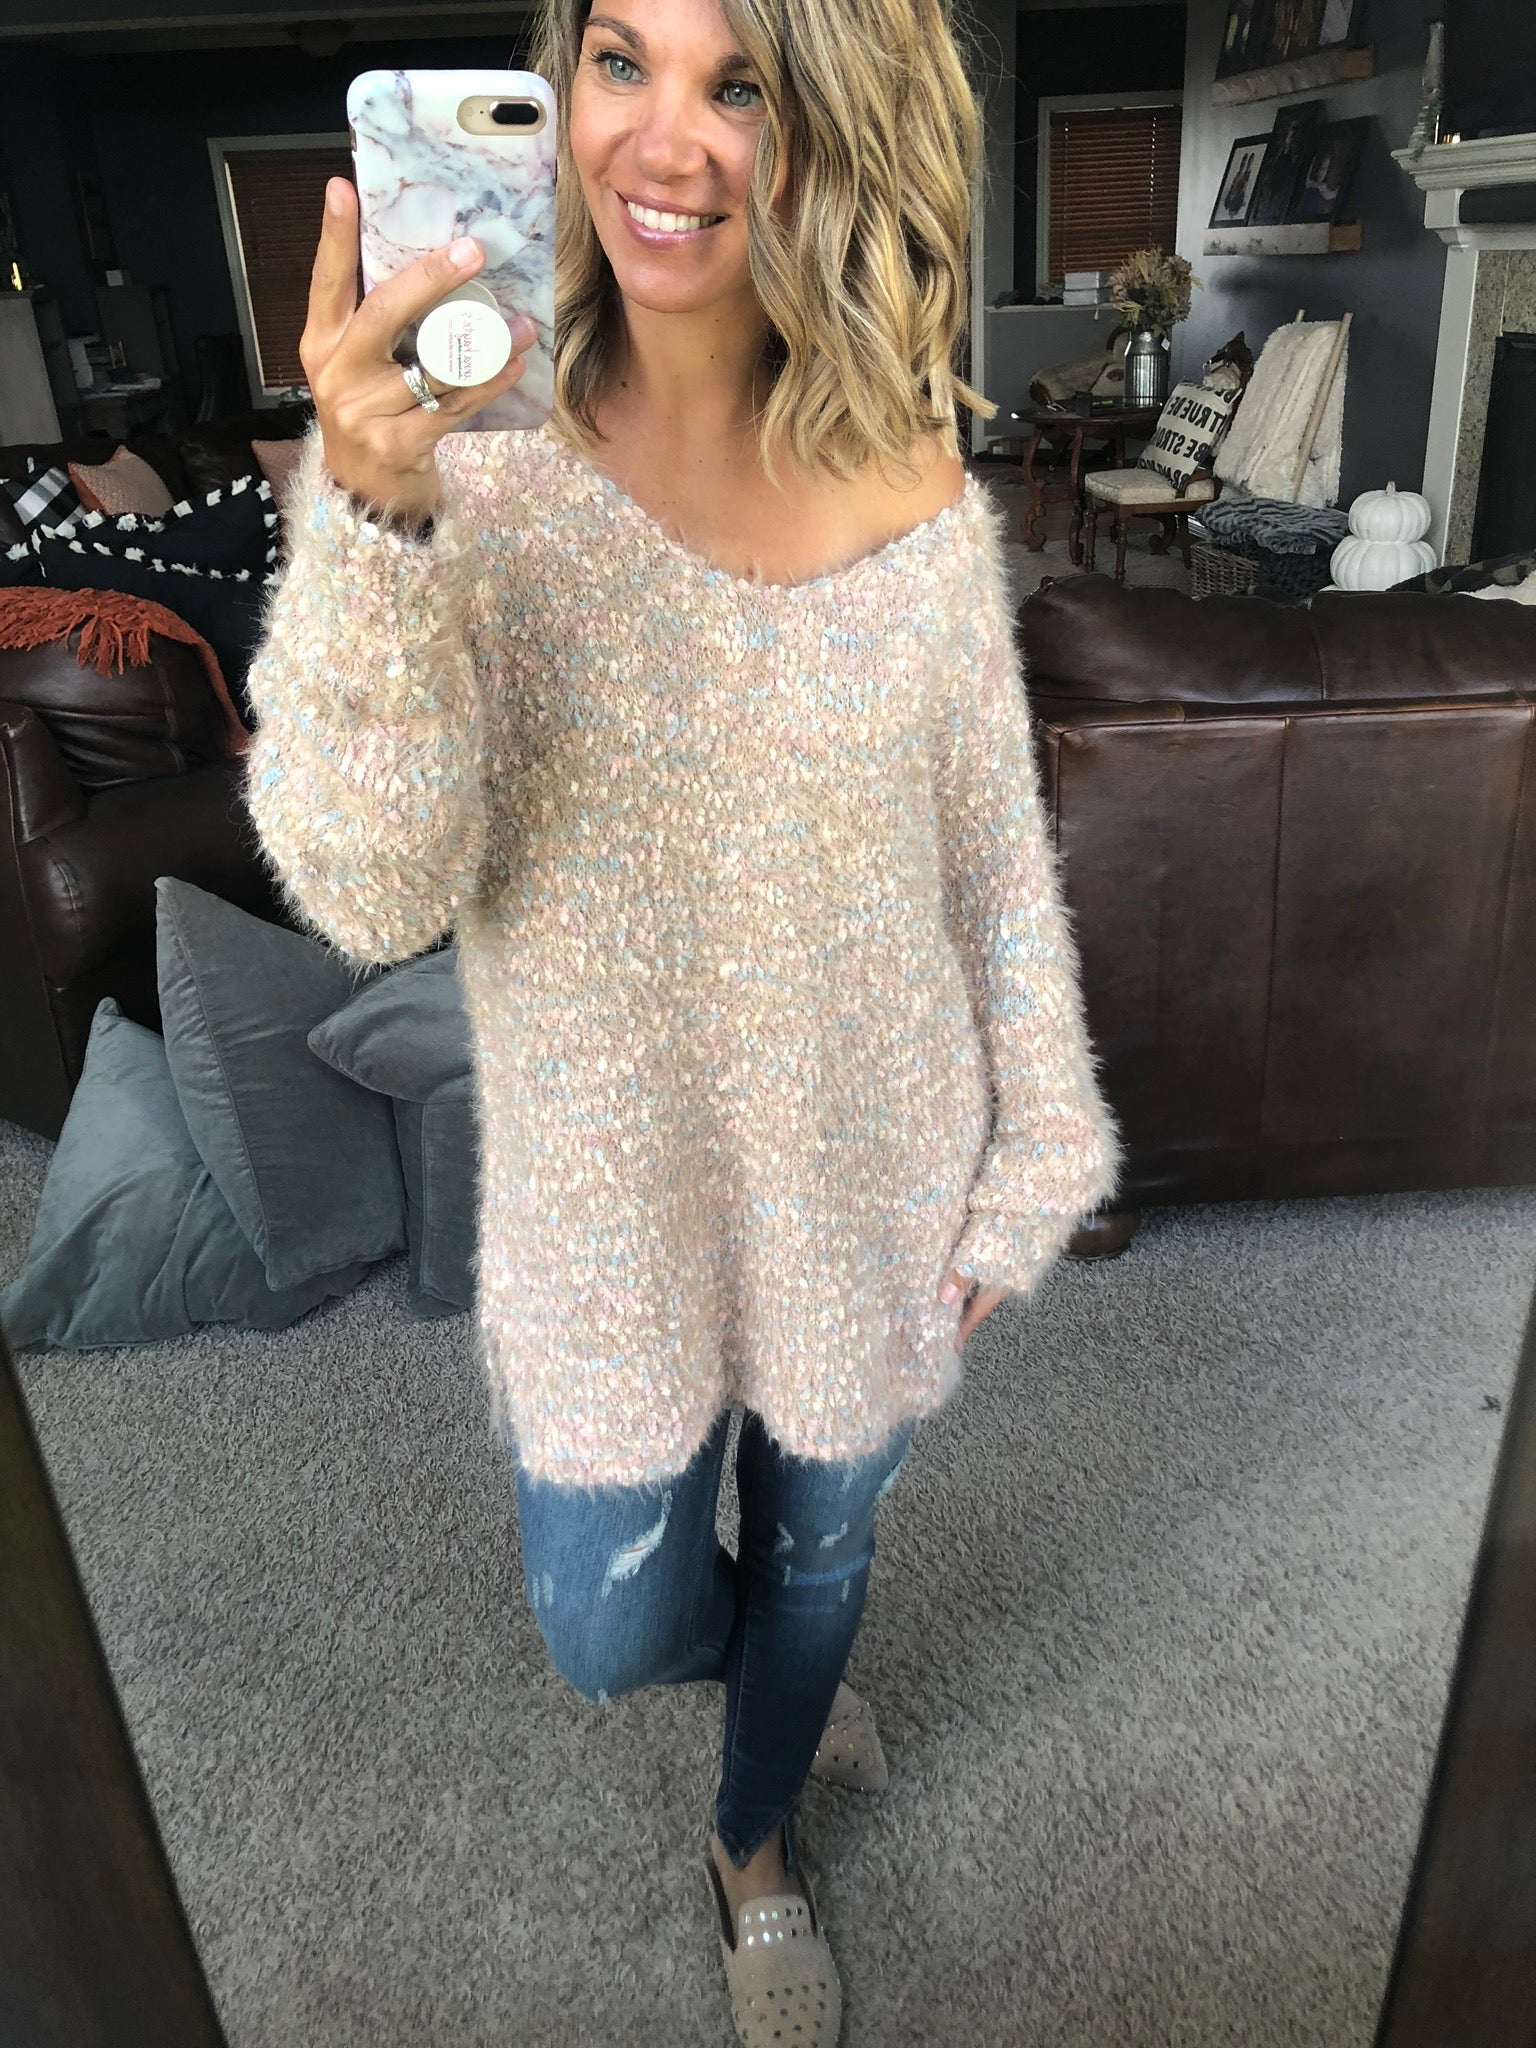 Cotton Candy Clouds Oatmeal Mix Popcorn Mohair V-Neck Tunic Sweater